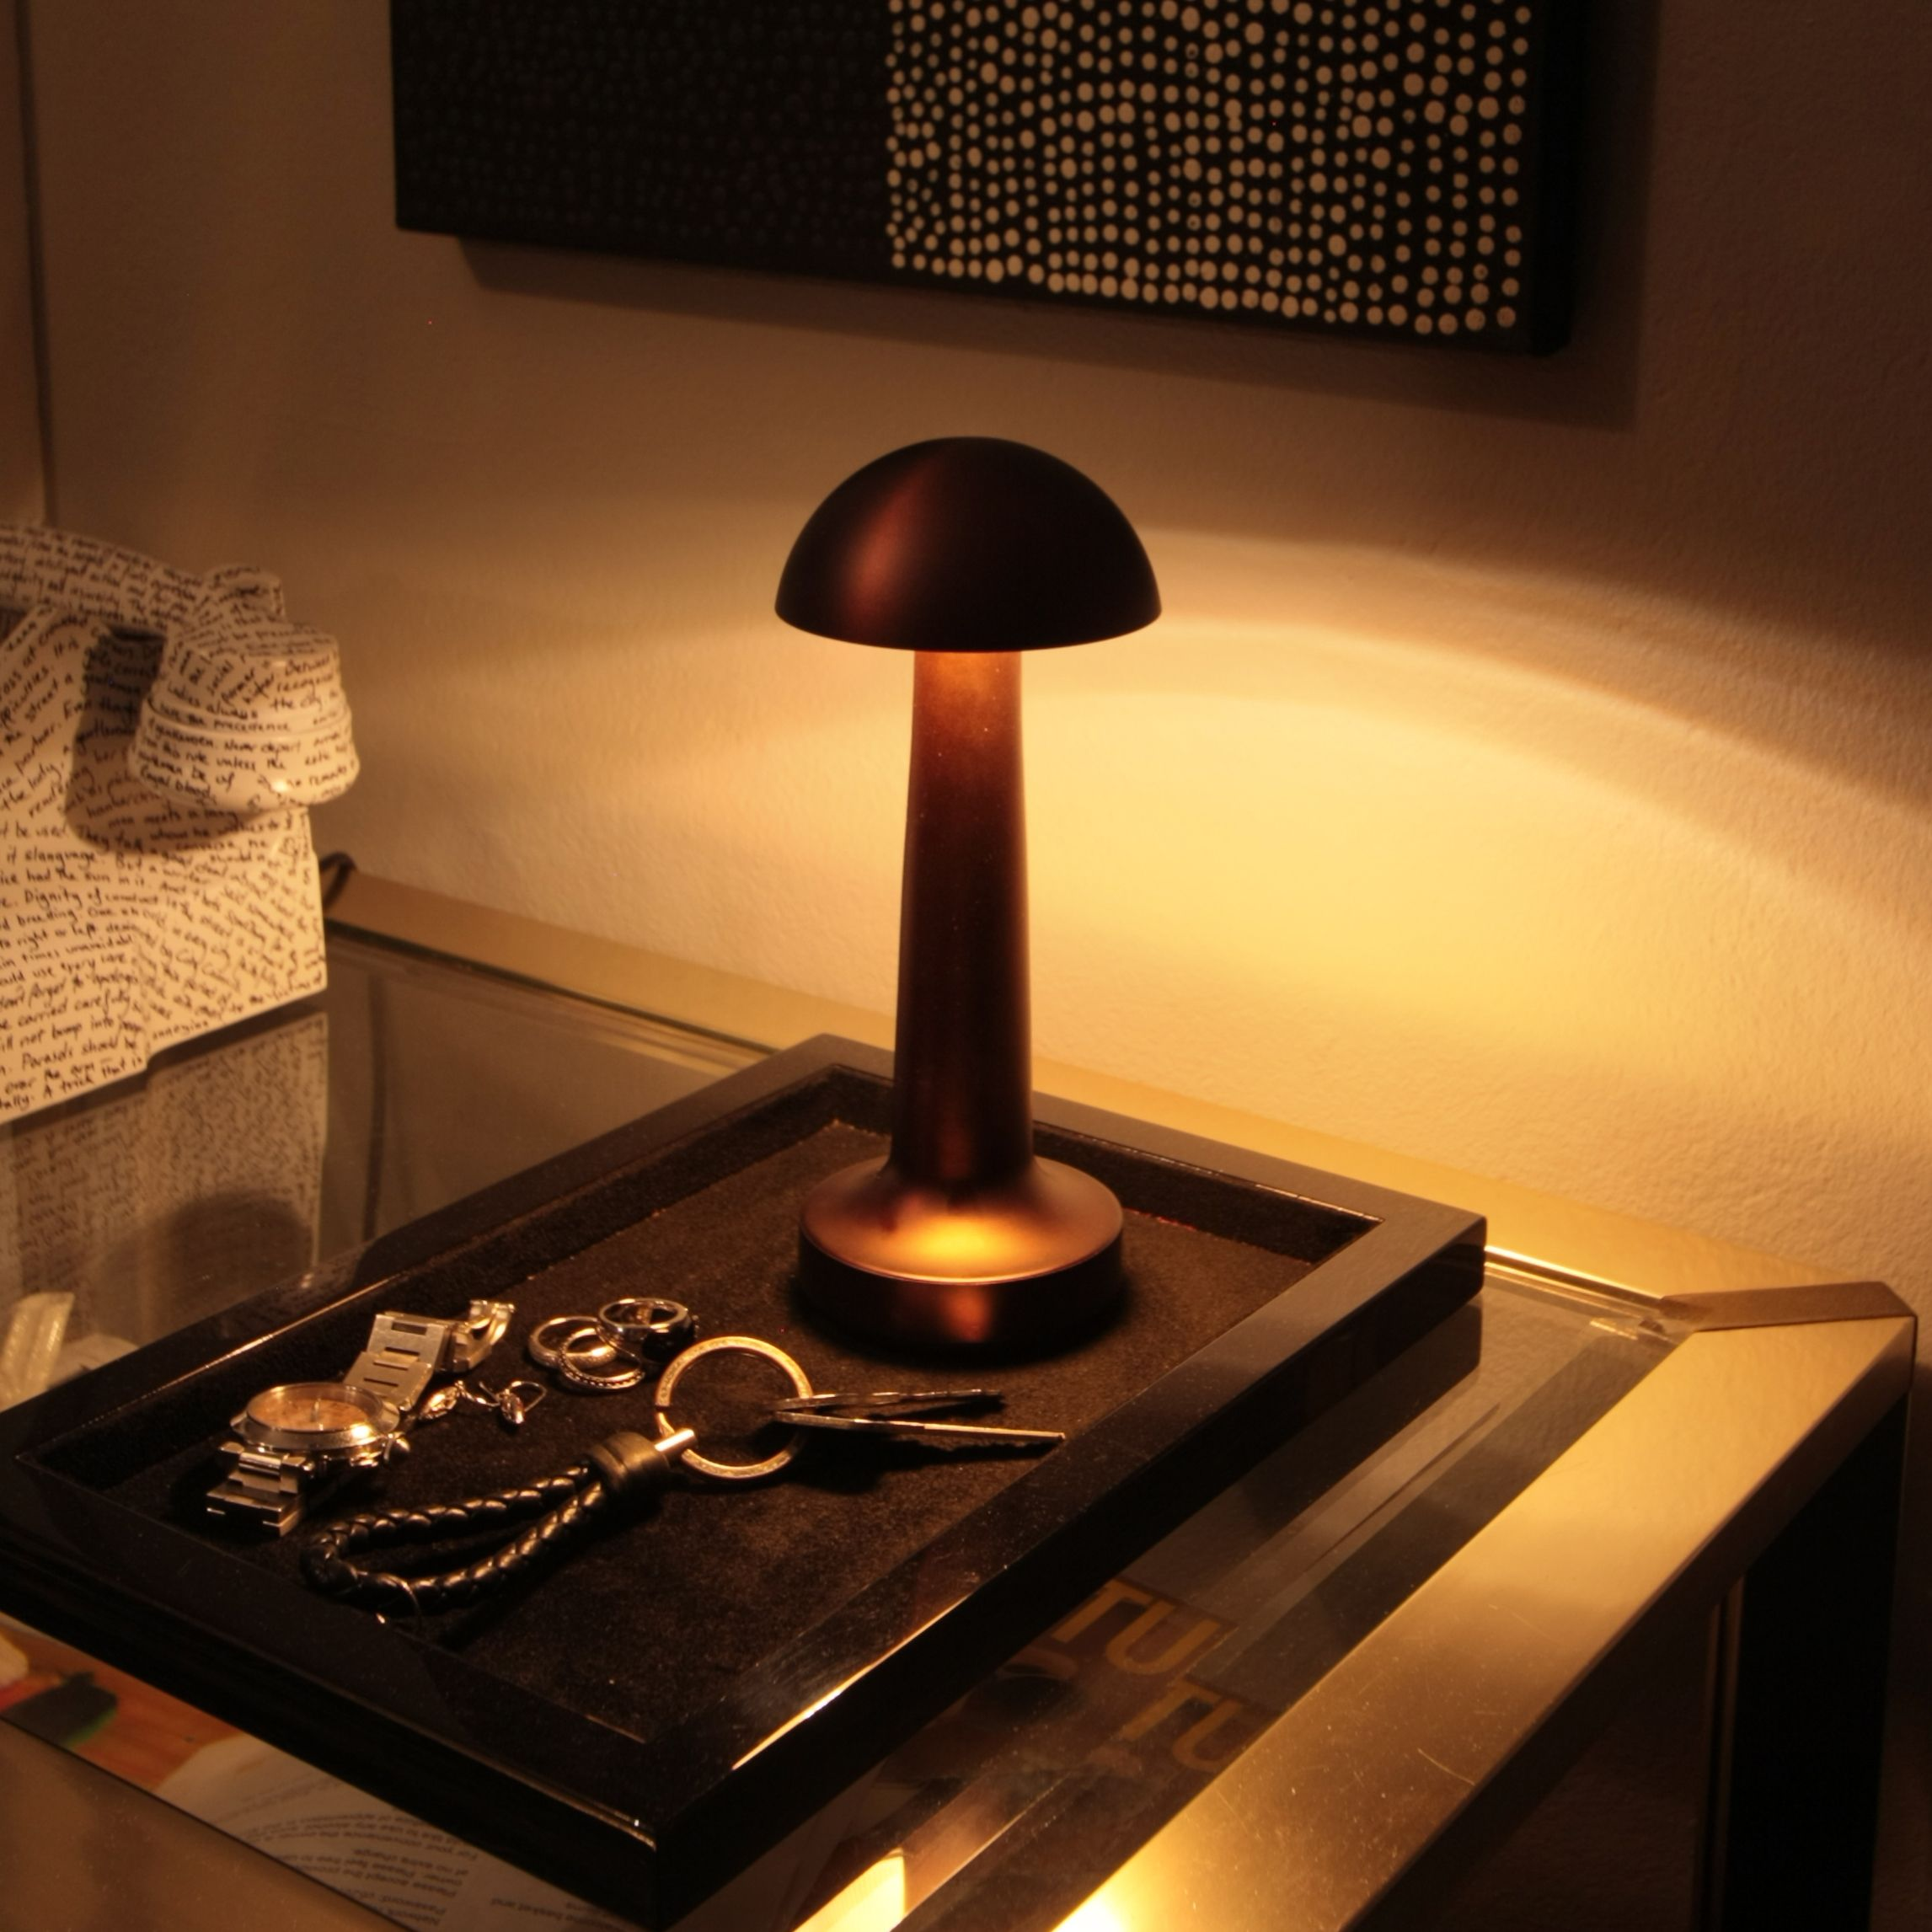 The Cooee 1c Cordless Lamp in Antique Bronze. Home